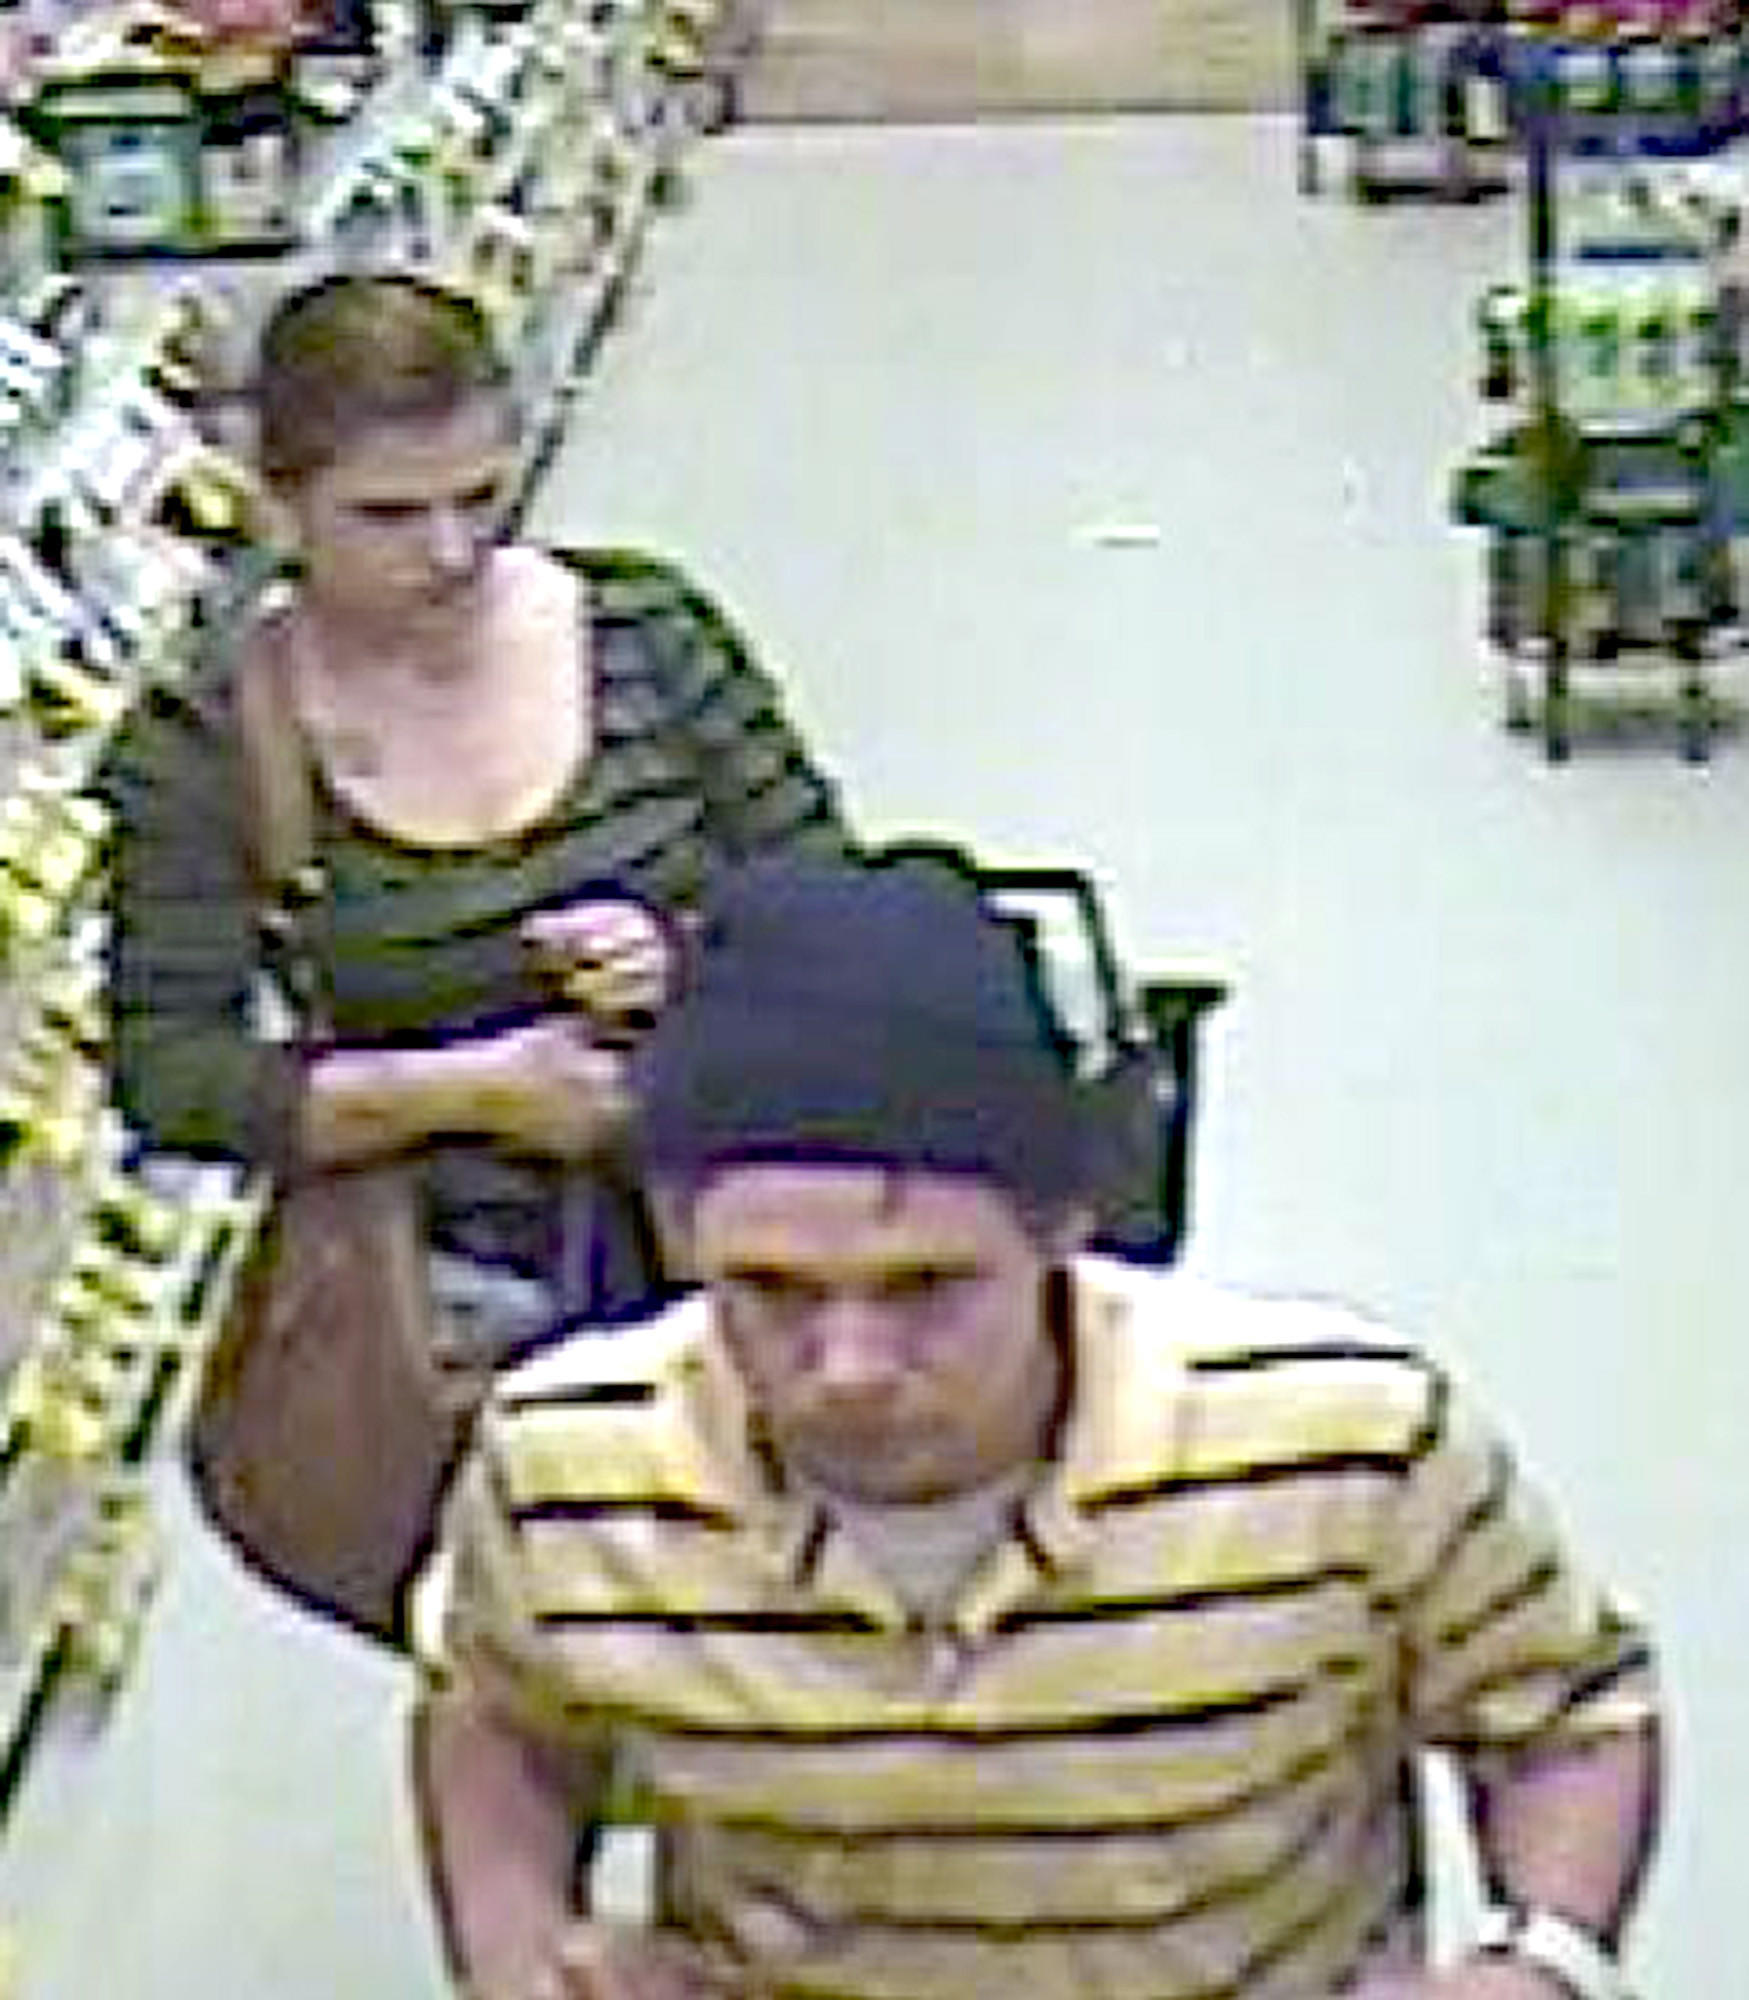 Police are looking for a man and woman, who they shoplifted several hundreds of dollars in products from a local grocery stores.